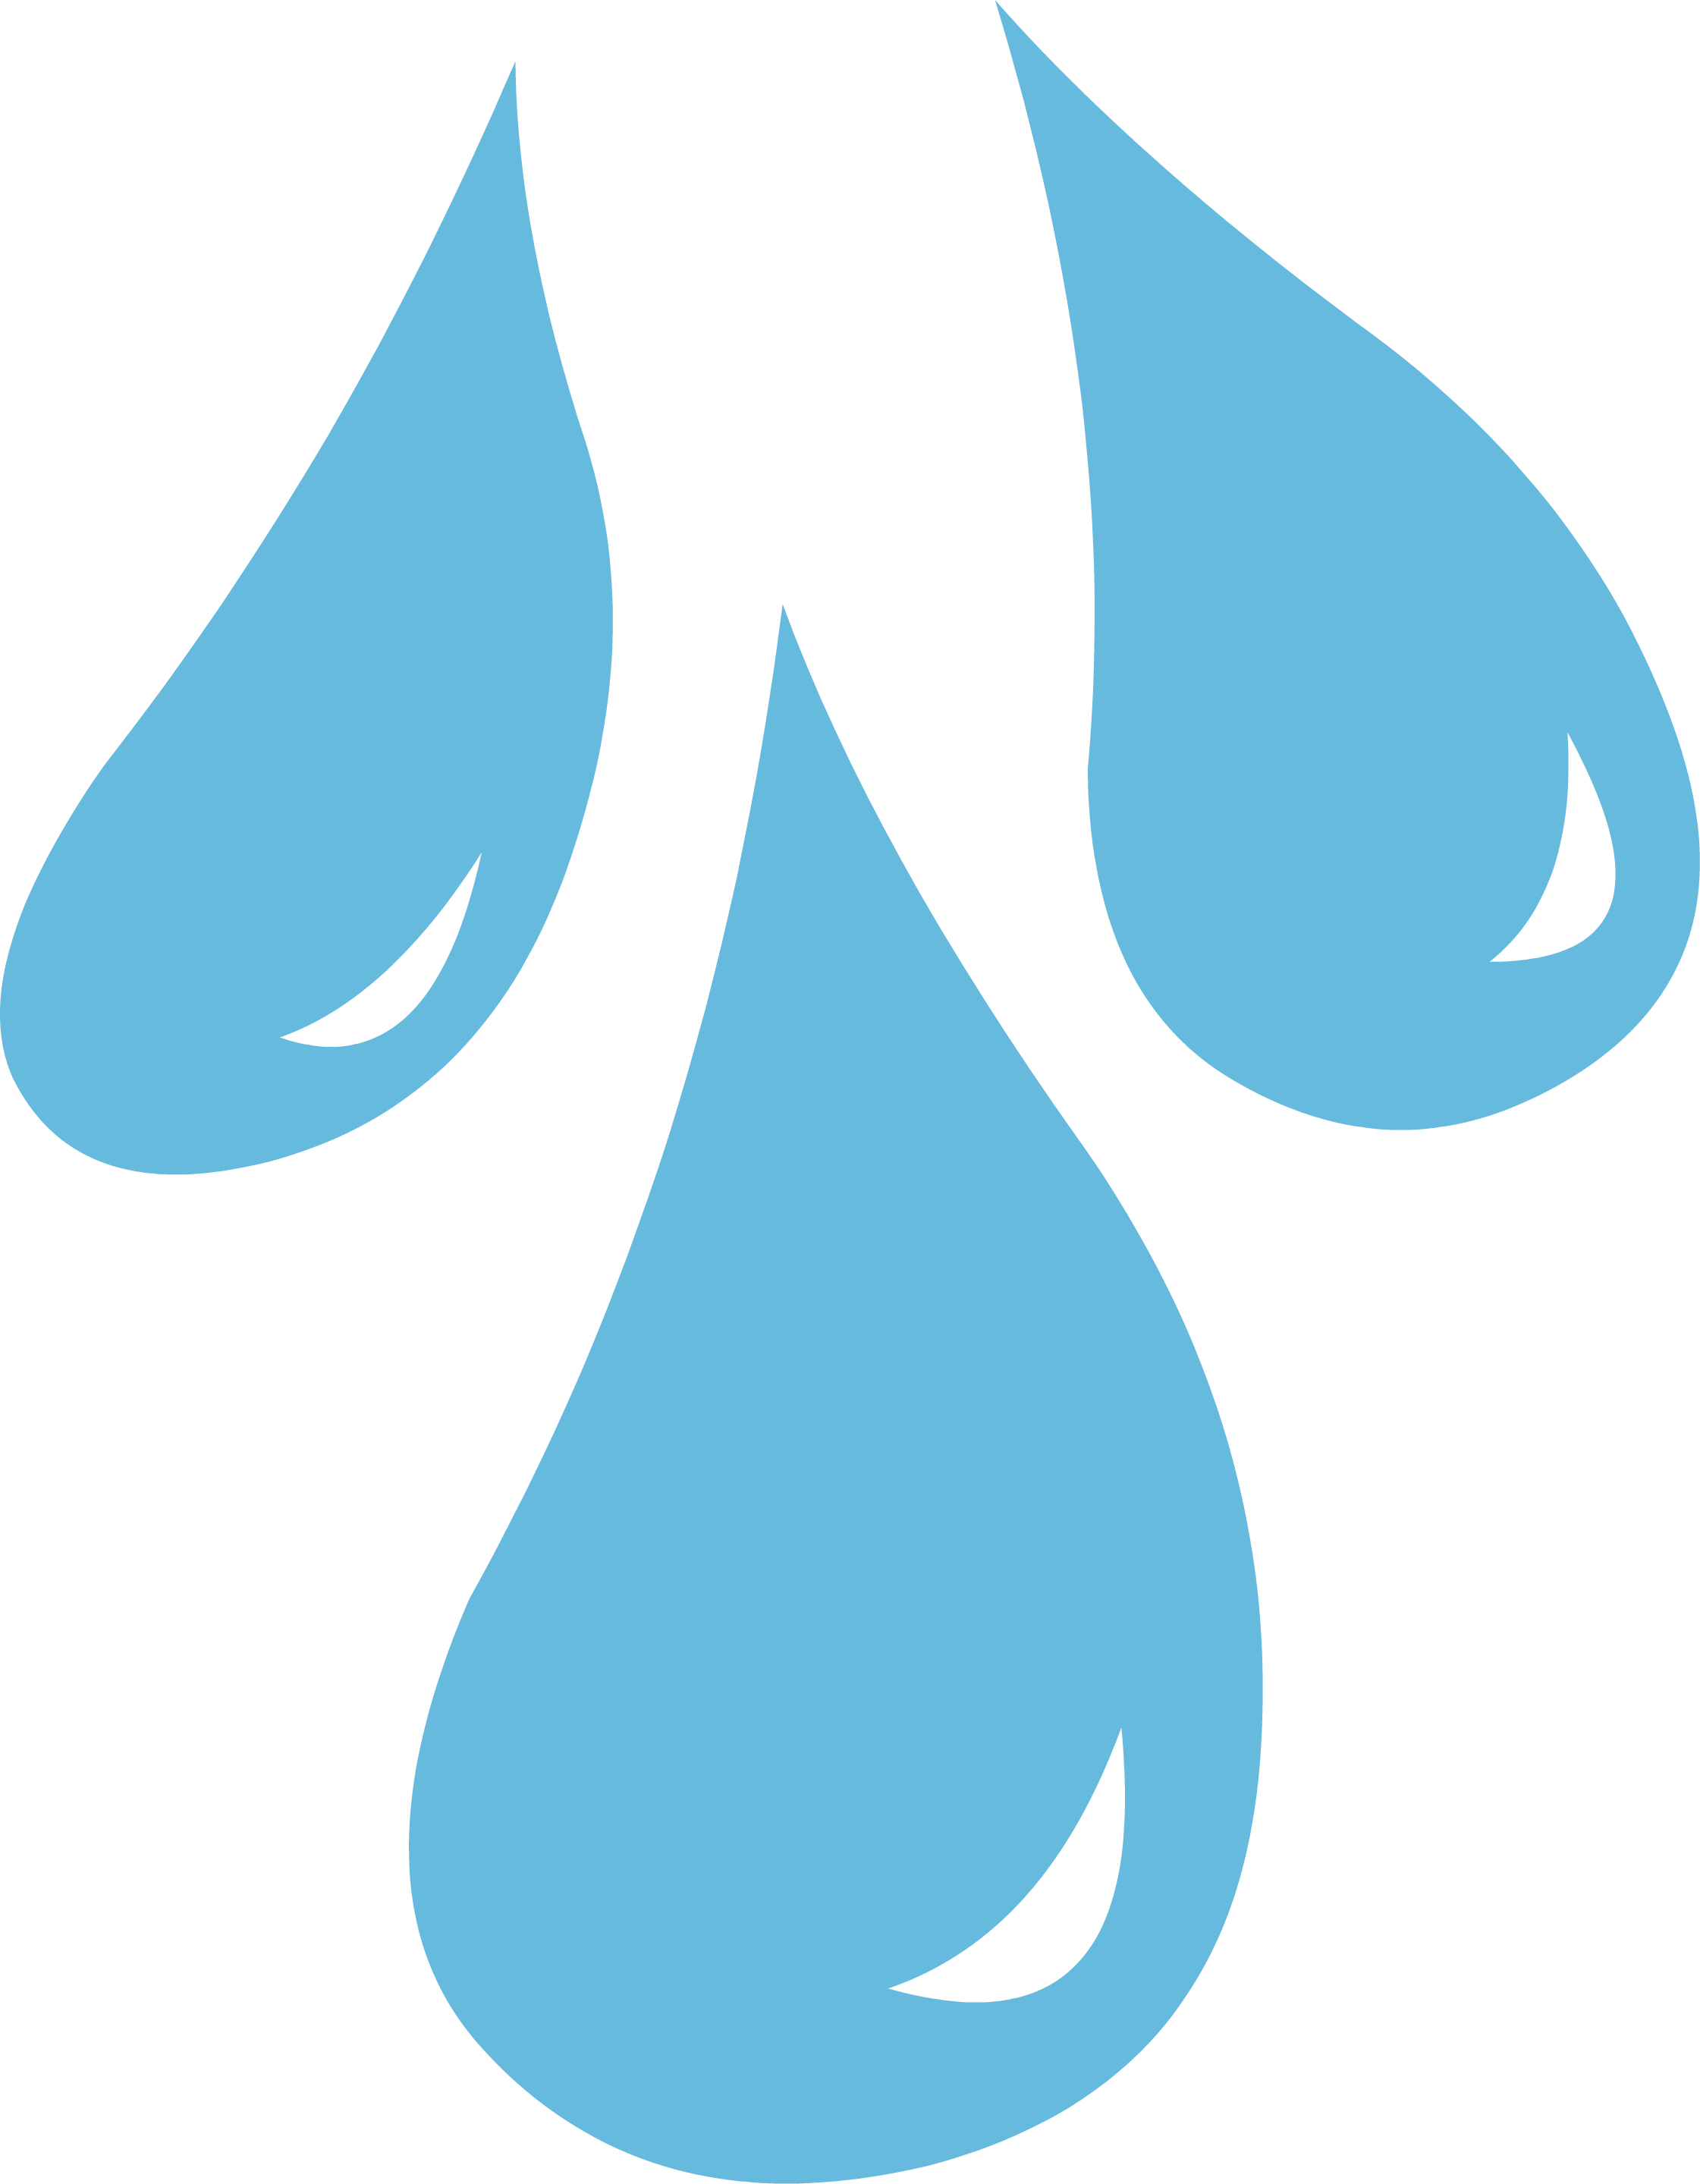 Clipart Leaves Transpiration Clipart Leaves Transpiration